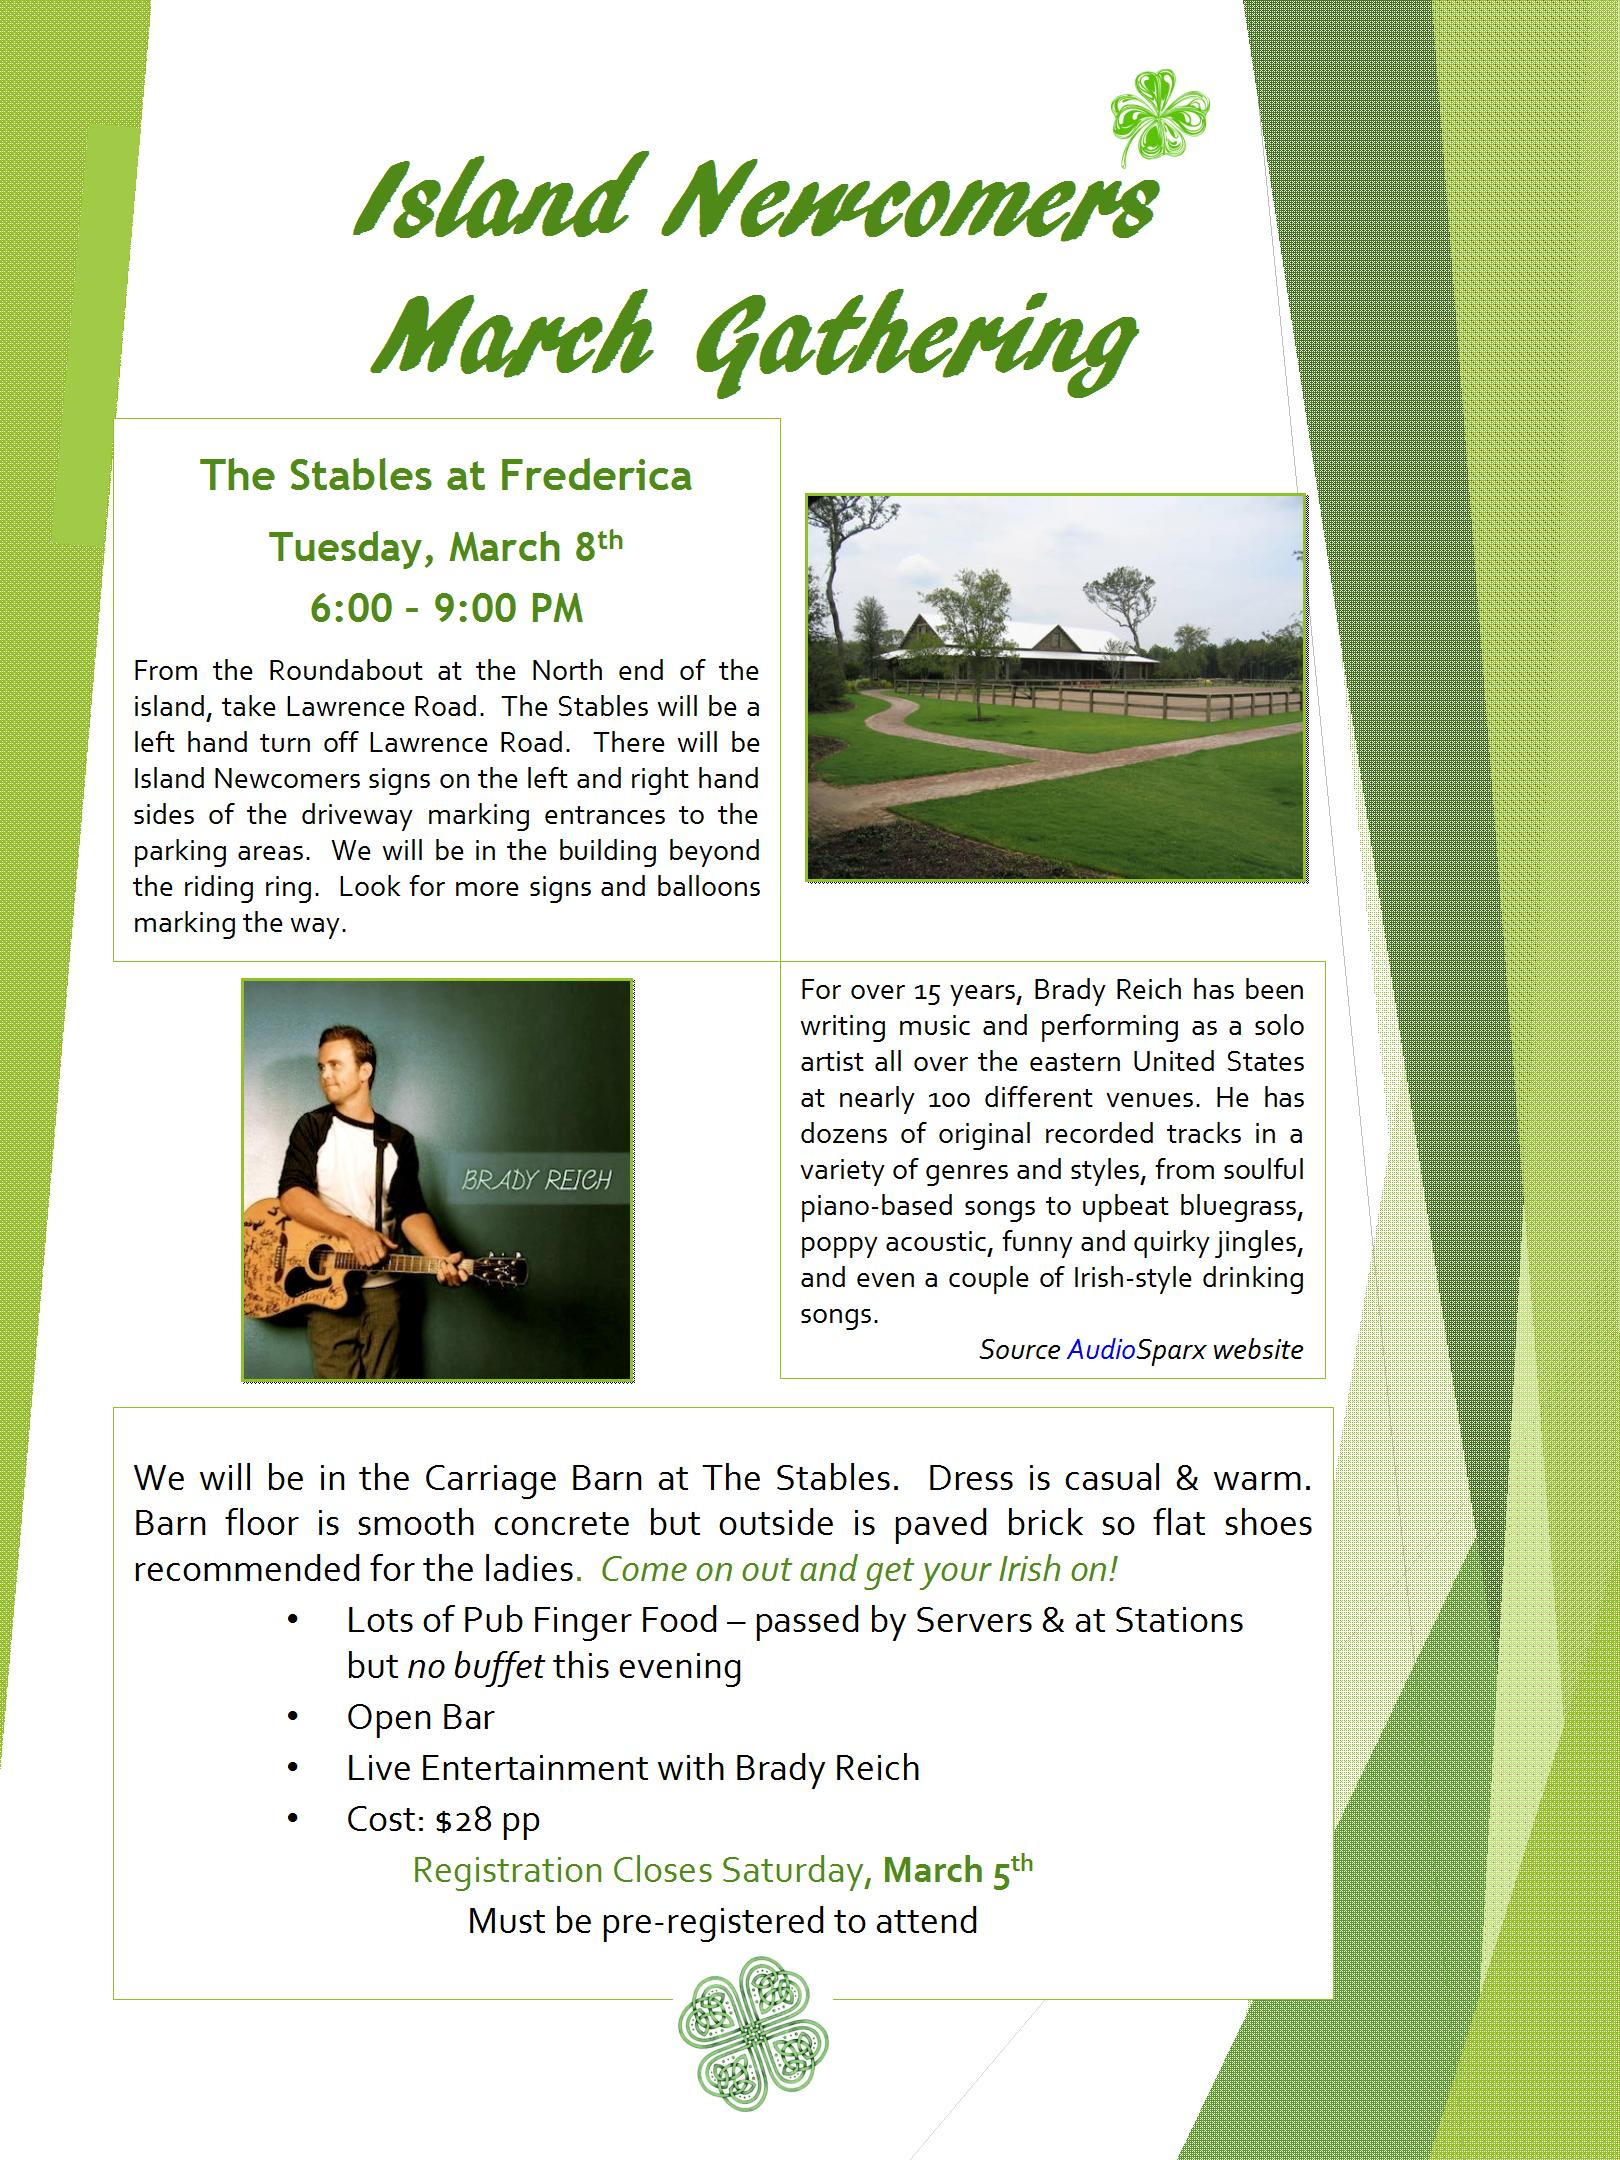 GST - March Gathering Flyer